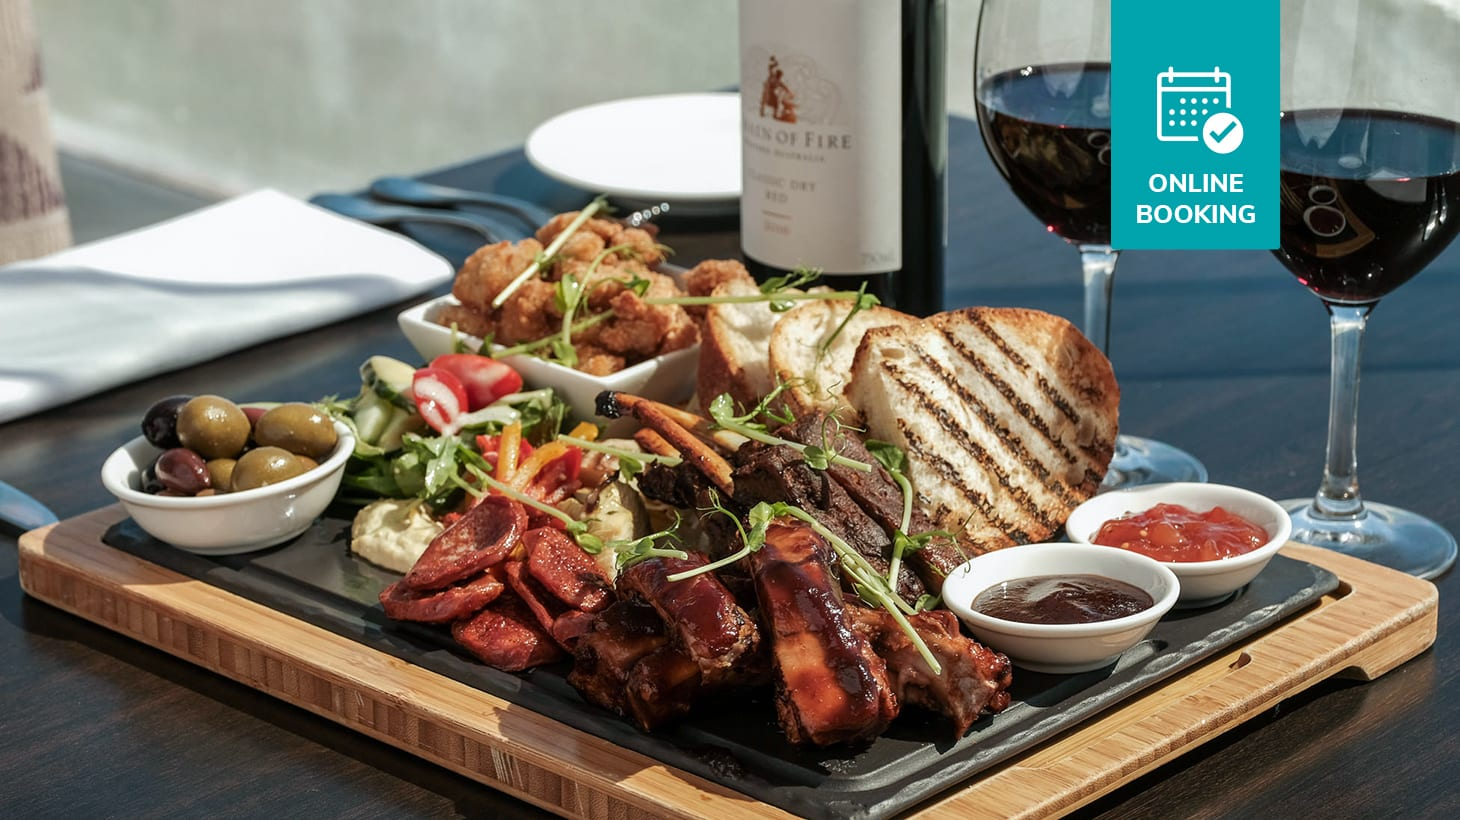 BBQ Meat Platter with a Bottle of Wine on Scarborough Beach - Just $45 for Two! Straits Cafe at Rendezvous Hotel Scarborough Scarborough